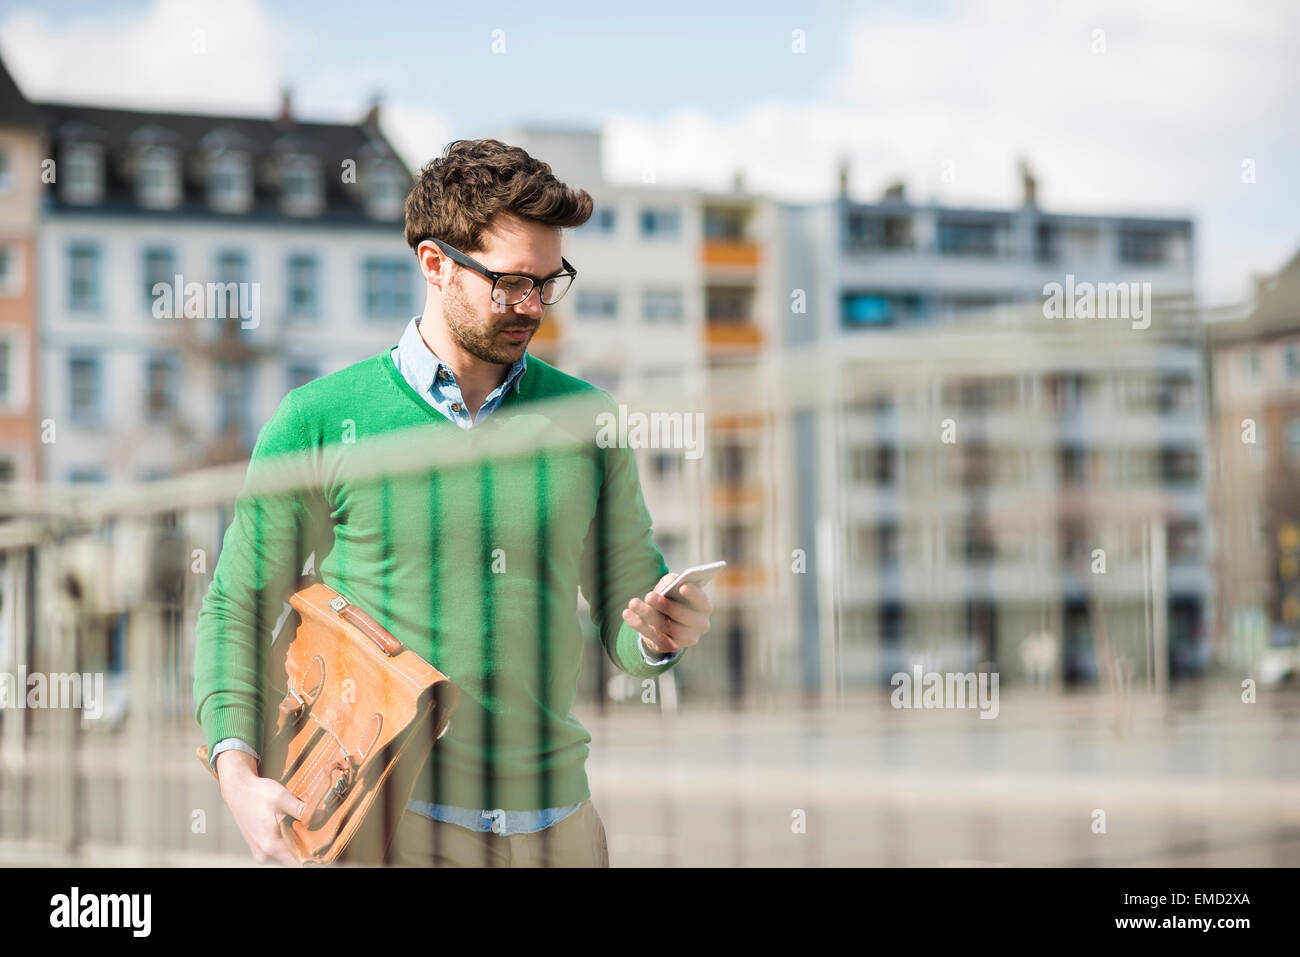 Man in green sweater carrying briefcase, reading text message - Stock Image